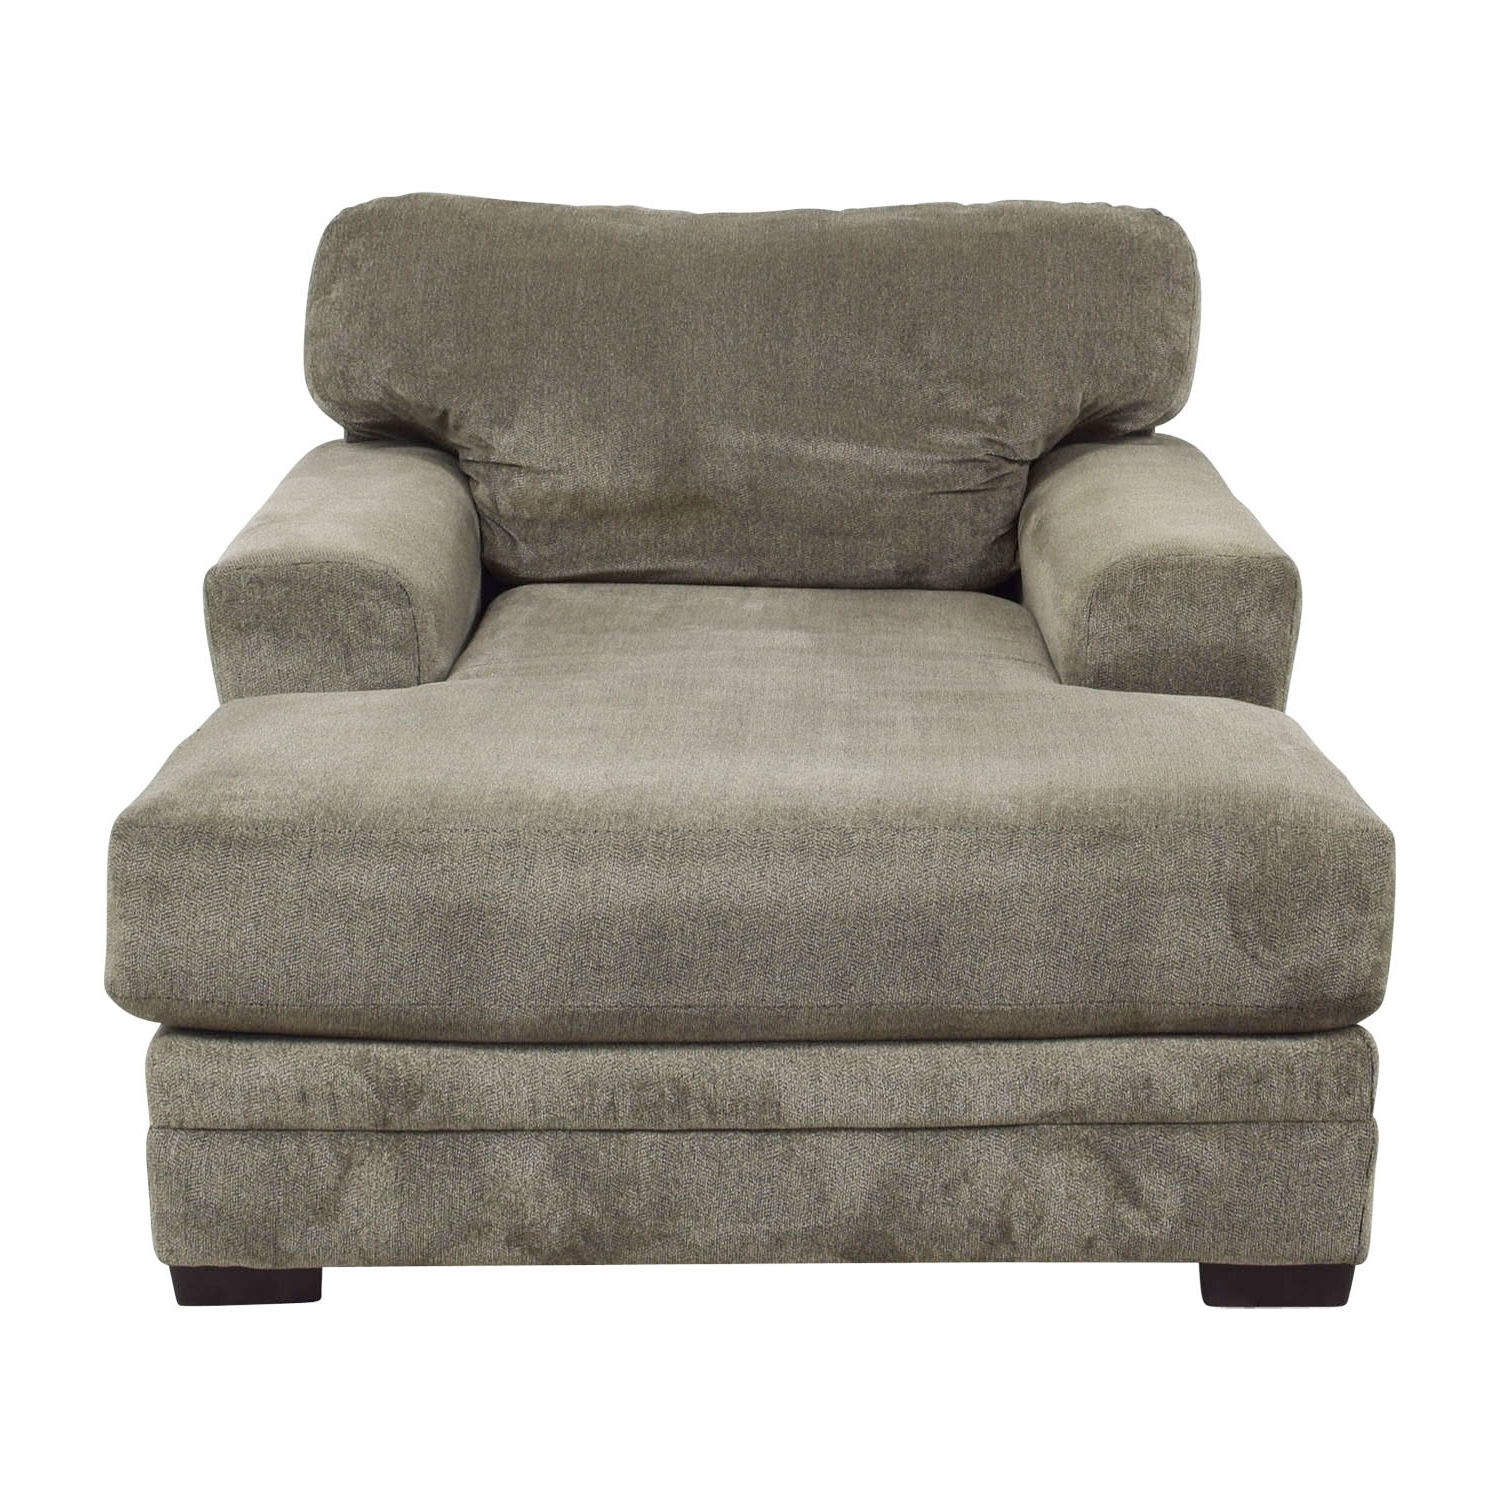 [%81% Off – Bob's Furniture Bob's Furniture Grey Chaise Lounge / Sofas For Famous Gray Chaise Lounges|Gray Chaise Lounges Inside Preferred 81% Off – Bob's Furniture Bob's Furniture Grey Chaise Lounge / Sofas|Most Current Gray Chaise Lounges In 81% Off – Bob's Furniture Bob's Furniture Grey Chaise Lounge / Sofas|Most Popular 81% Off – Bob's Furniture Bob's Furniture Grey Chaise Lounge / Sofas With Gray Chaise Lounges%] (View 1 of 15)